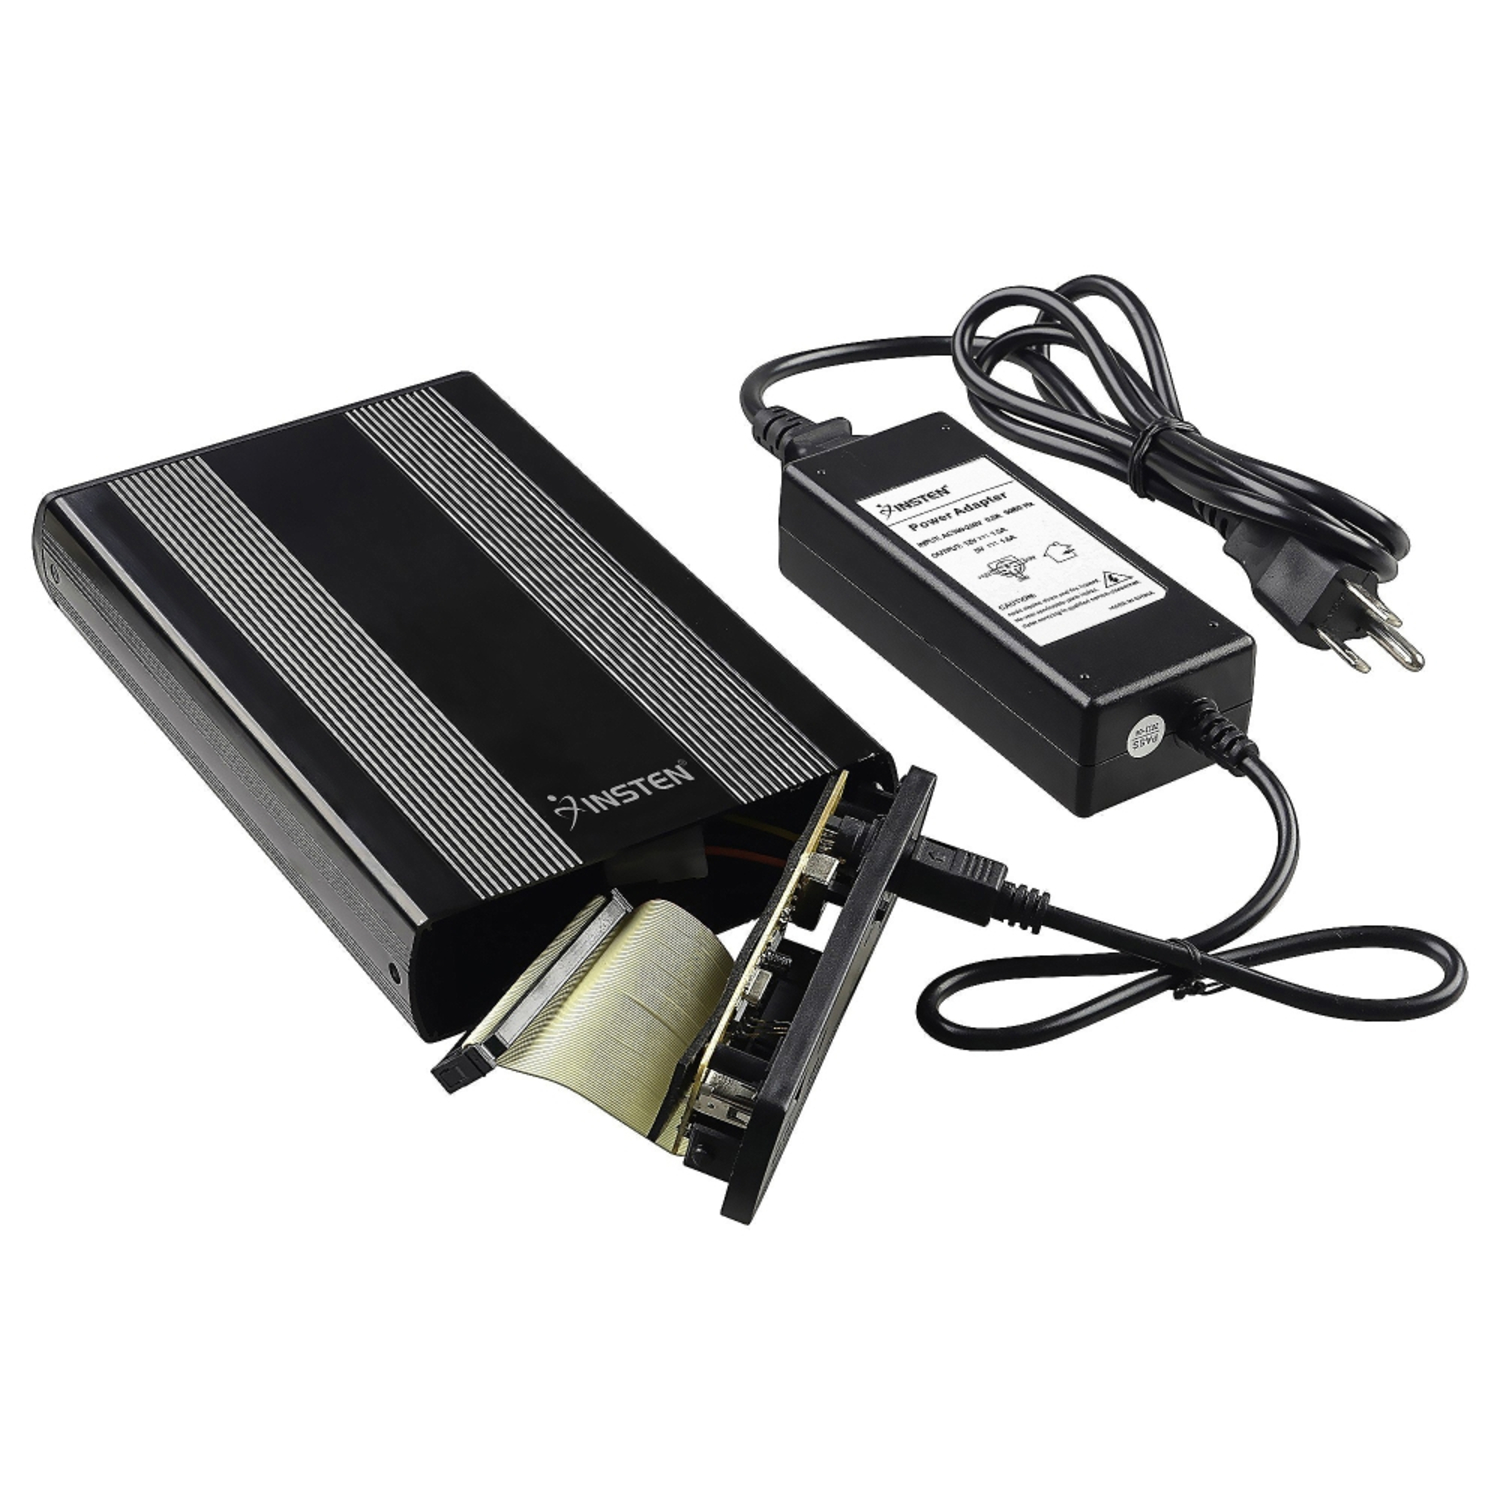 "Insten 3.5"" IDE External HDD Hard Drive Enclosure, Black (with External AC Power Supply)"